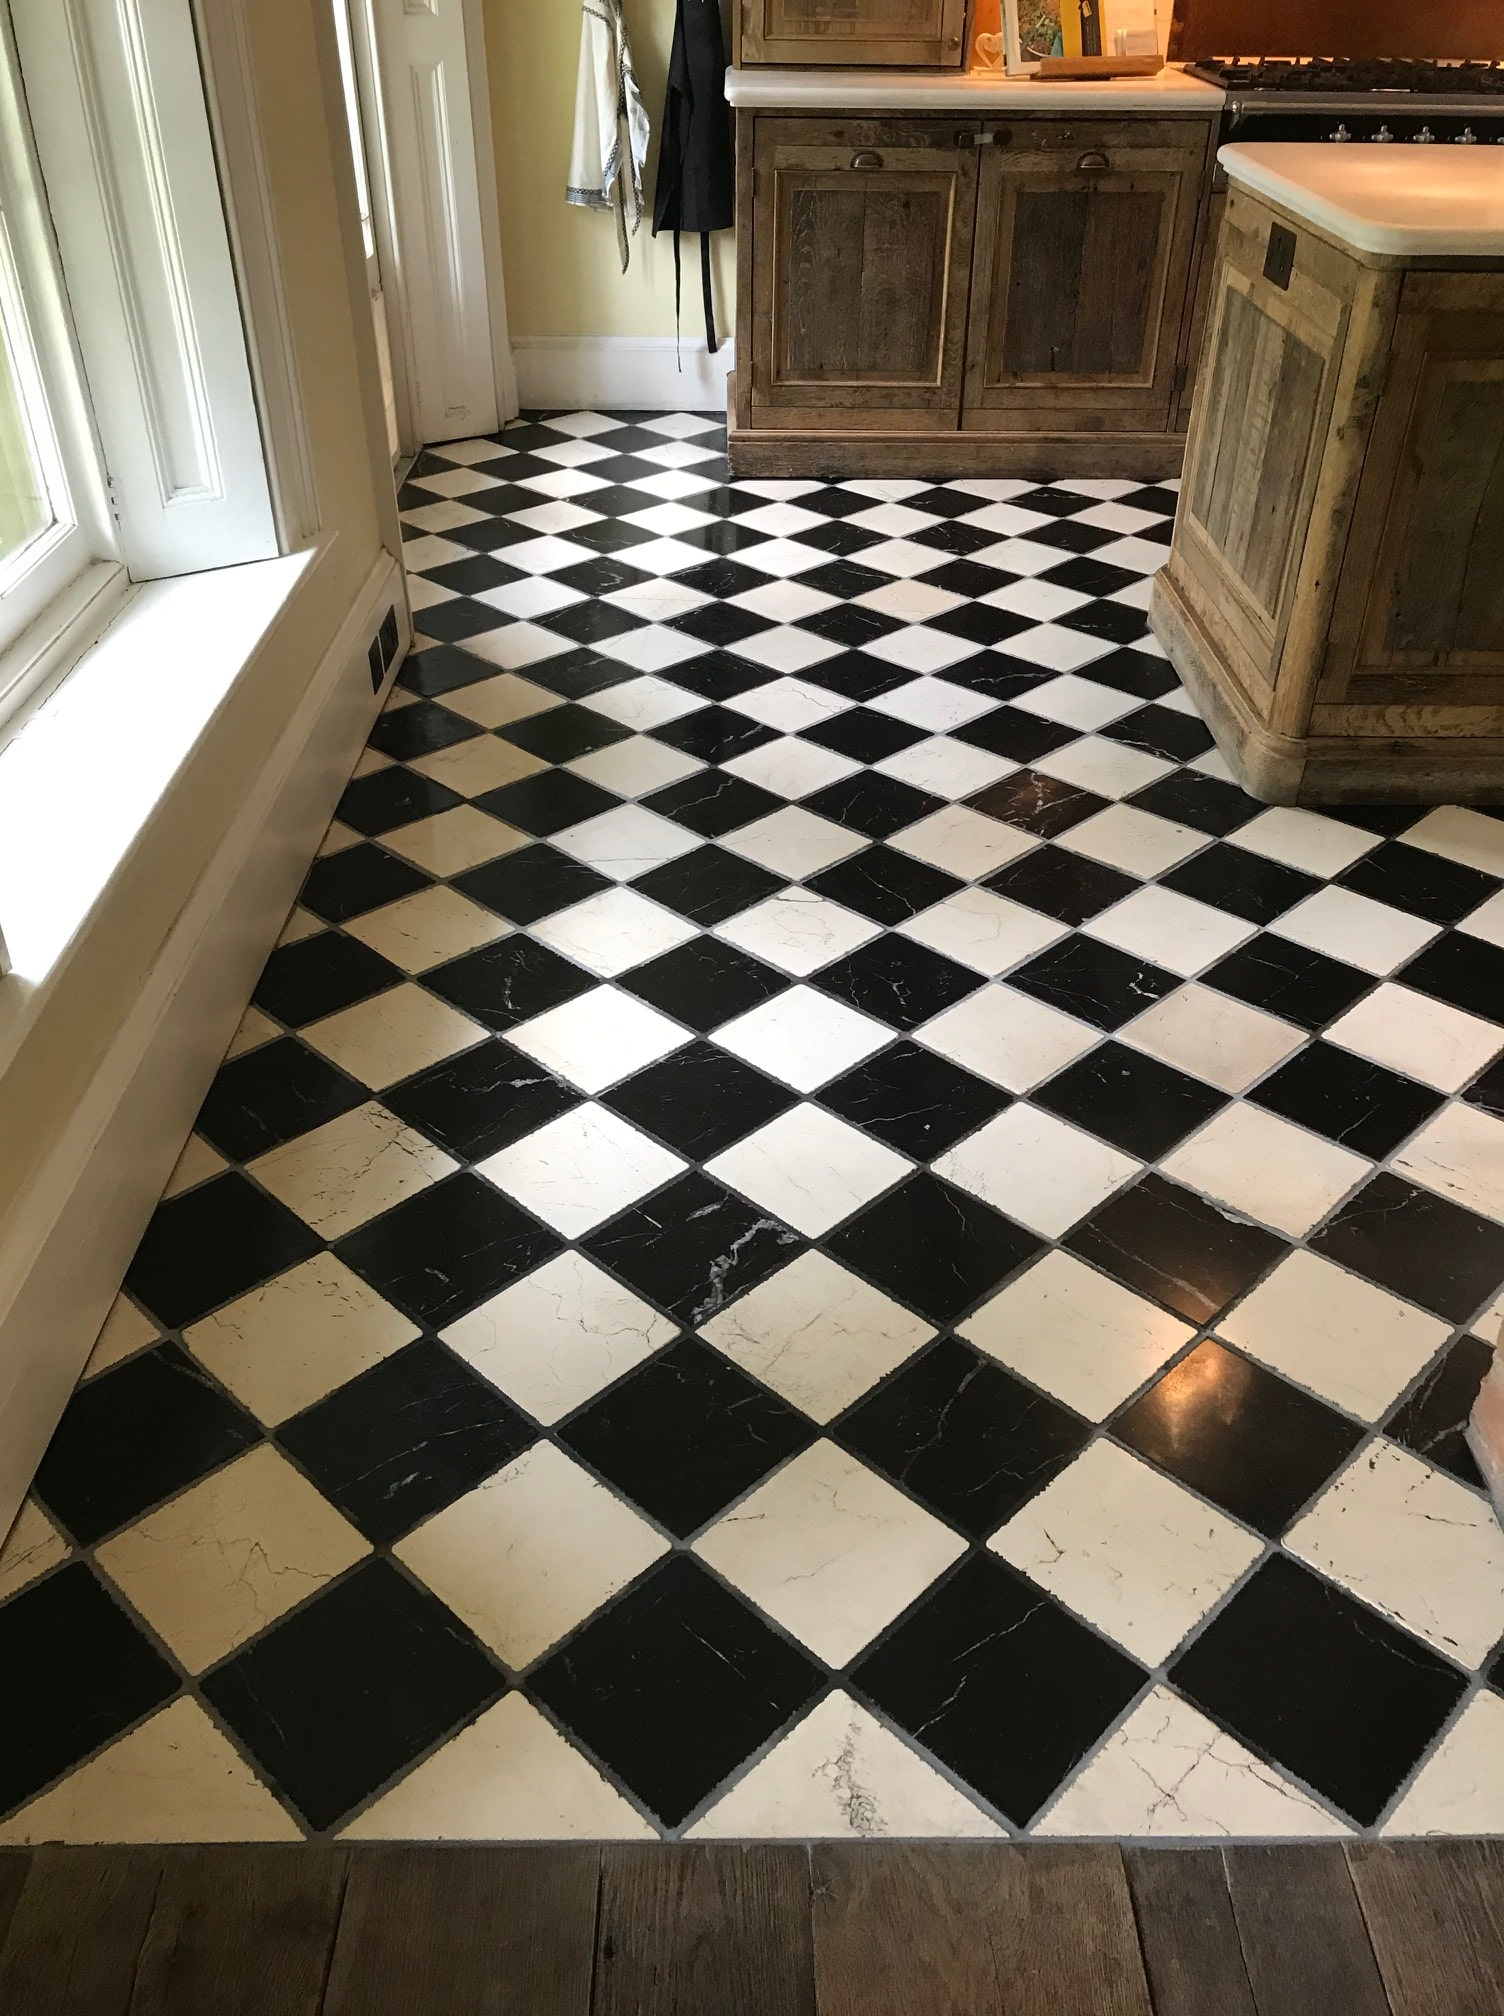 Classic Black and White Marble Kitchen Floor After Grouting Renovation Bamber Bridge